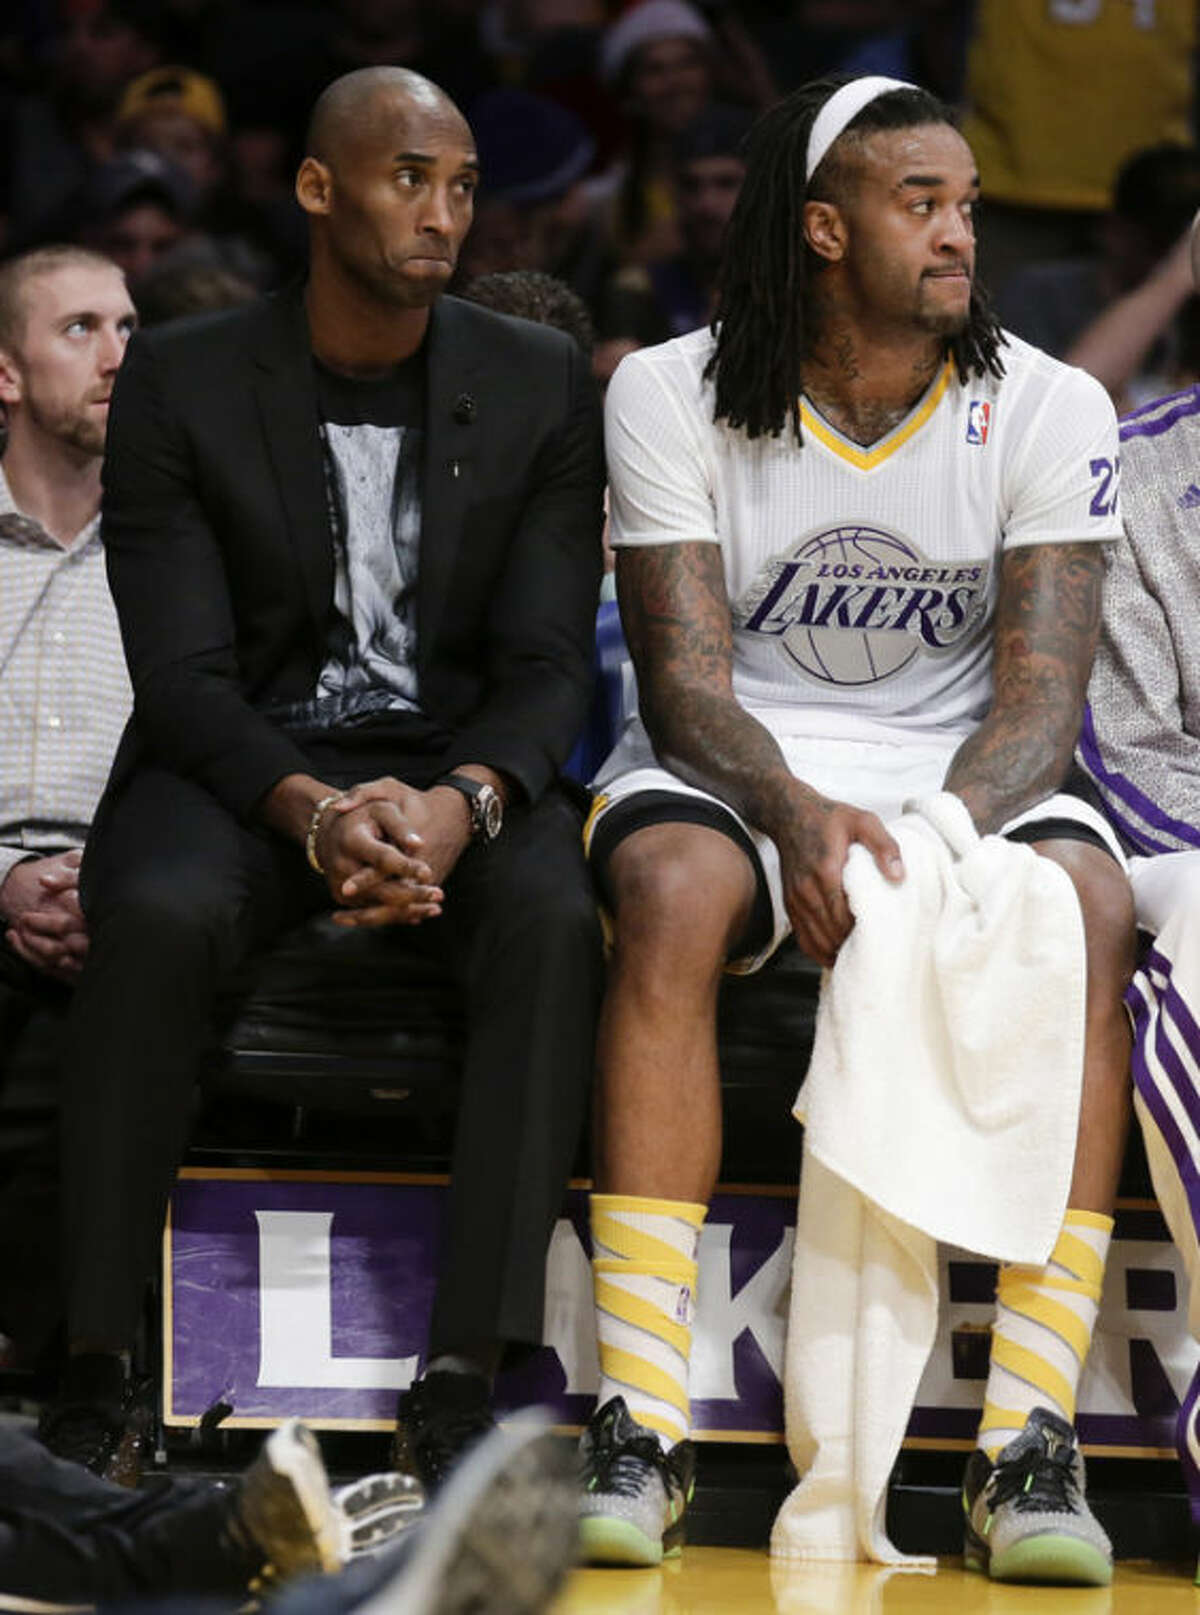 Los Angeles Lakers guard Kobe Bryant, left, and Jordan Hill sift on the bench during the first half of the Lakers' NBA basketball game against the Miami Heat in Los Angeles, Wednesday, Dec. 25, 2013. (AP Photo/Chris Carlson)